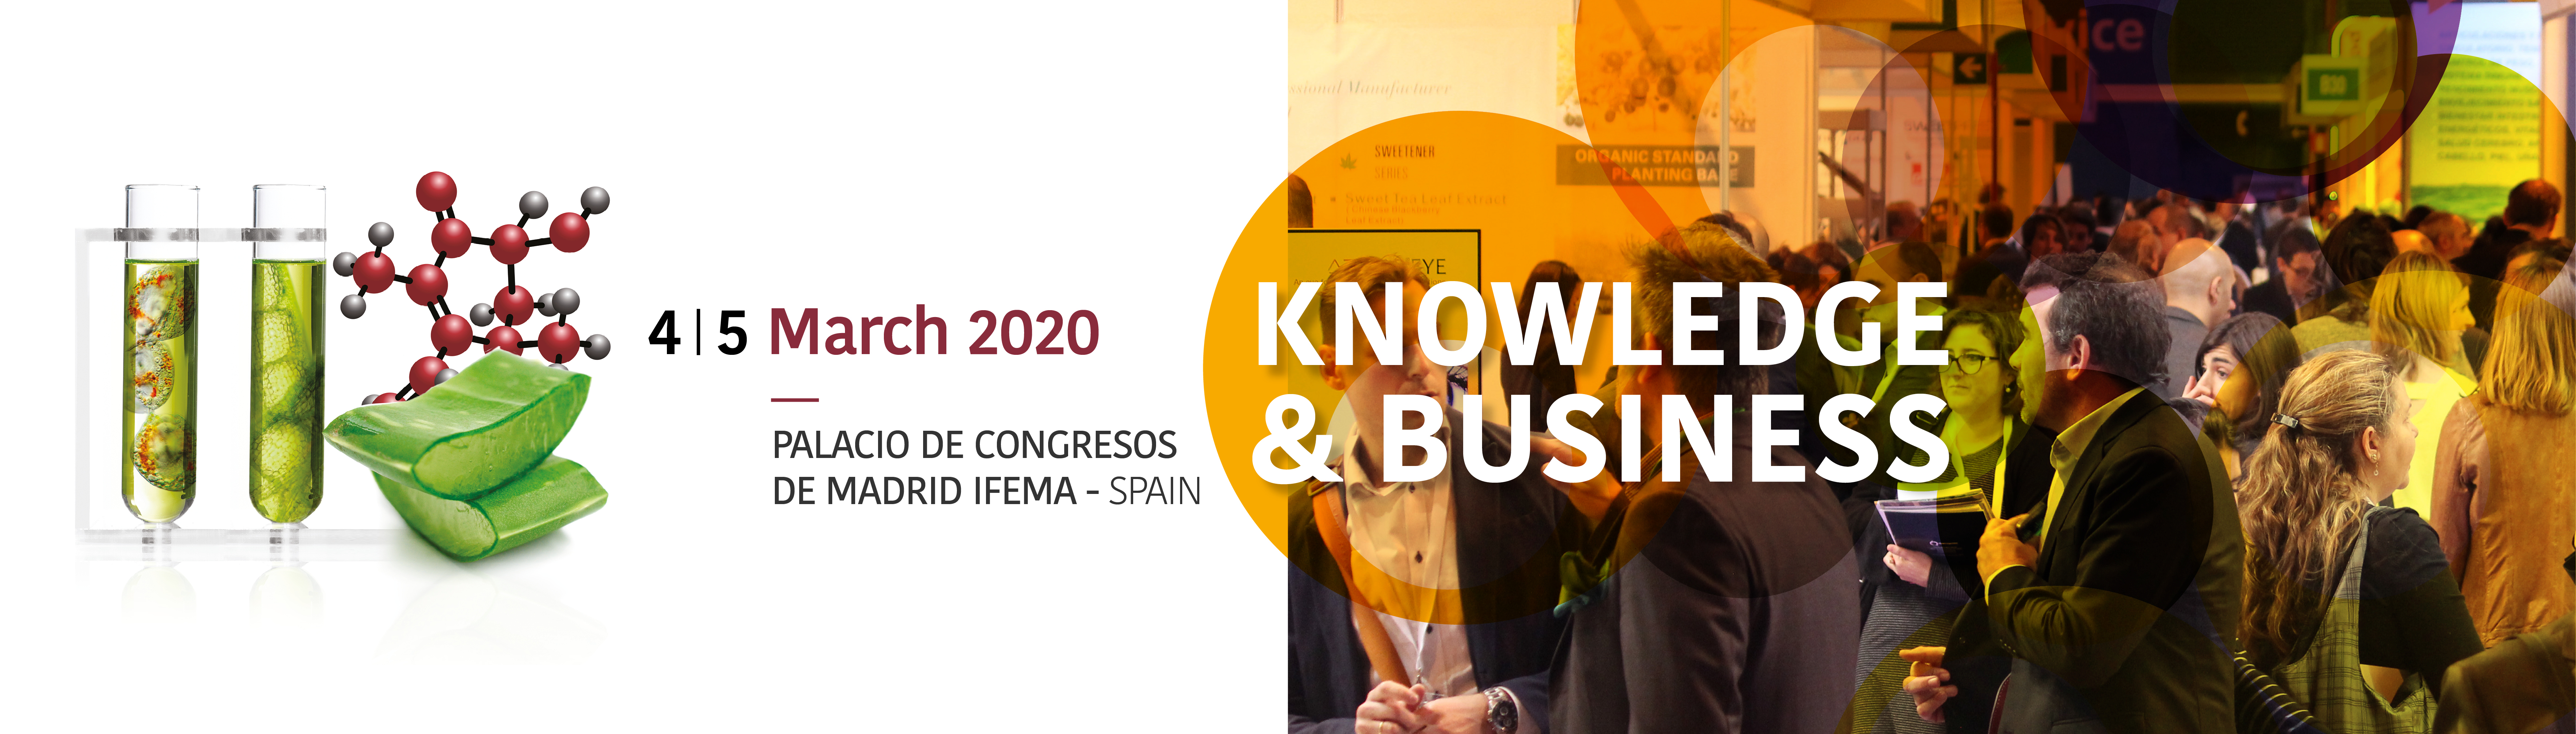 NUTRACEUTICALS Europe – Summit & Expo 2020: 100% of previous fair exhibition space already full